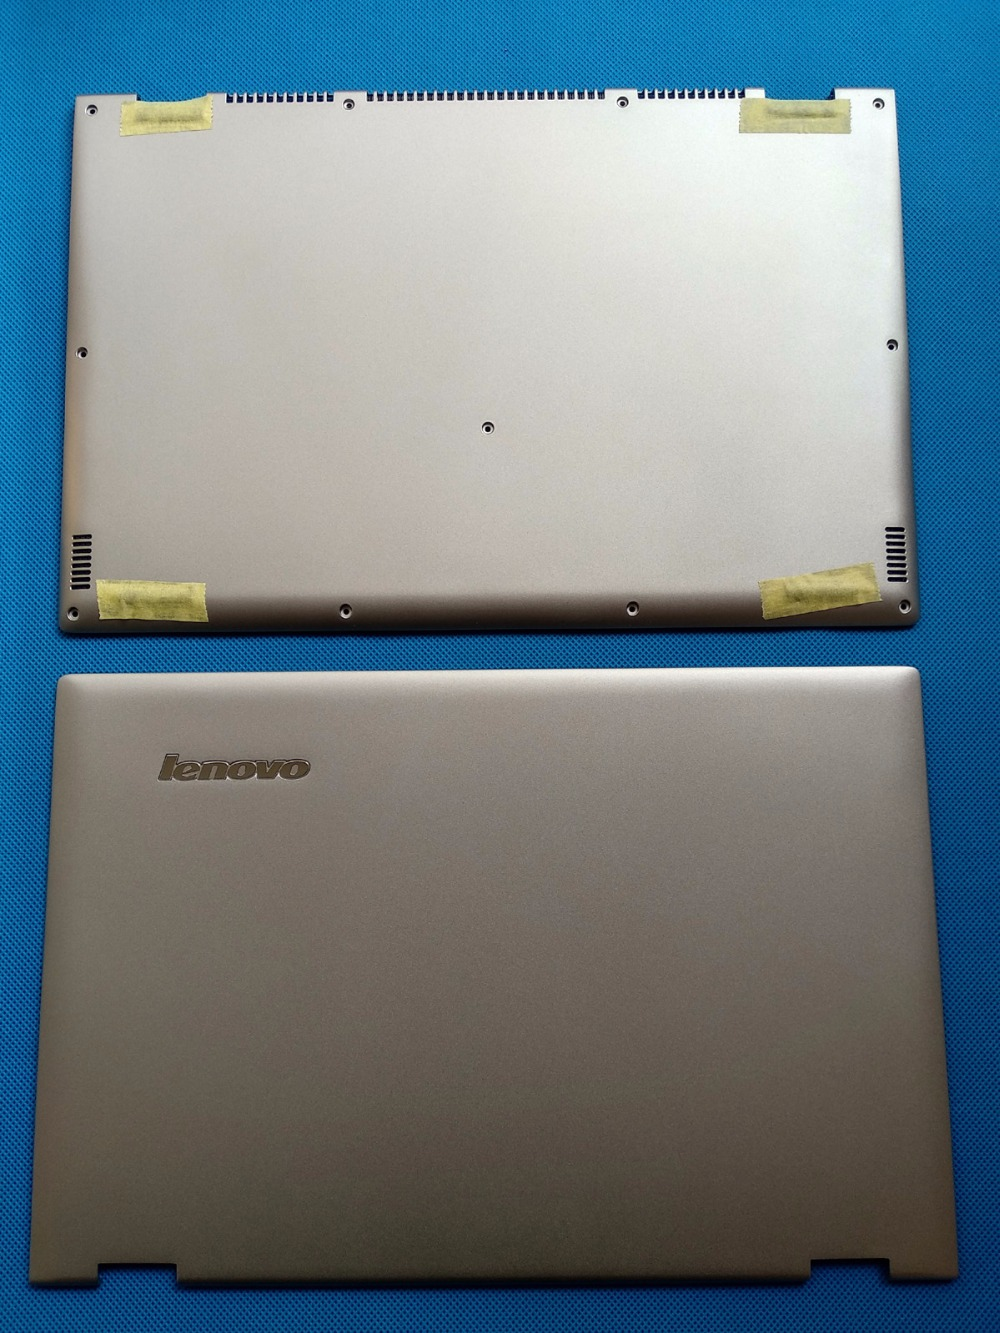 New Original Lenovo Ideapad Yoga 2 Pro 13 LCD Back Rear Lid Cover+ Base Cover Bottom Lower Case AM0S9000310 AM0S9000210 silvery new original for lenovo thinkpad x240 x240i base cover bottom case 04x5184 0c64937